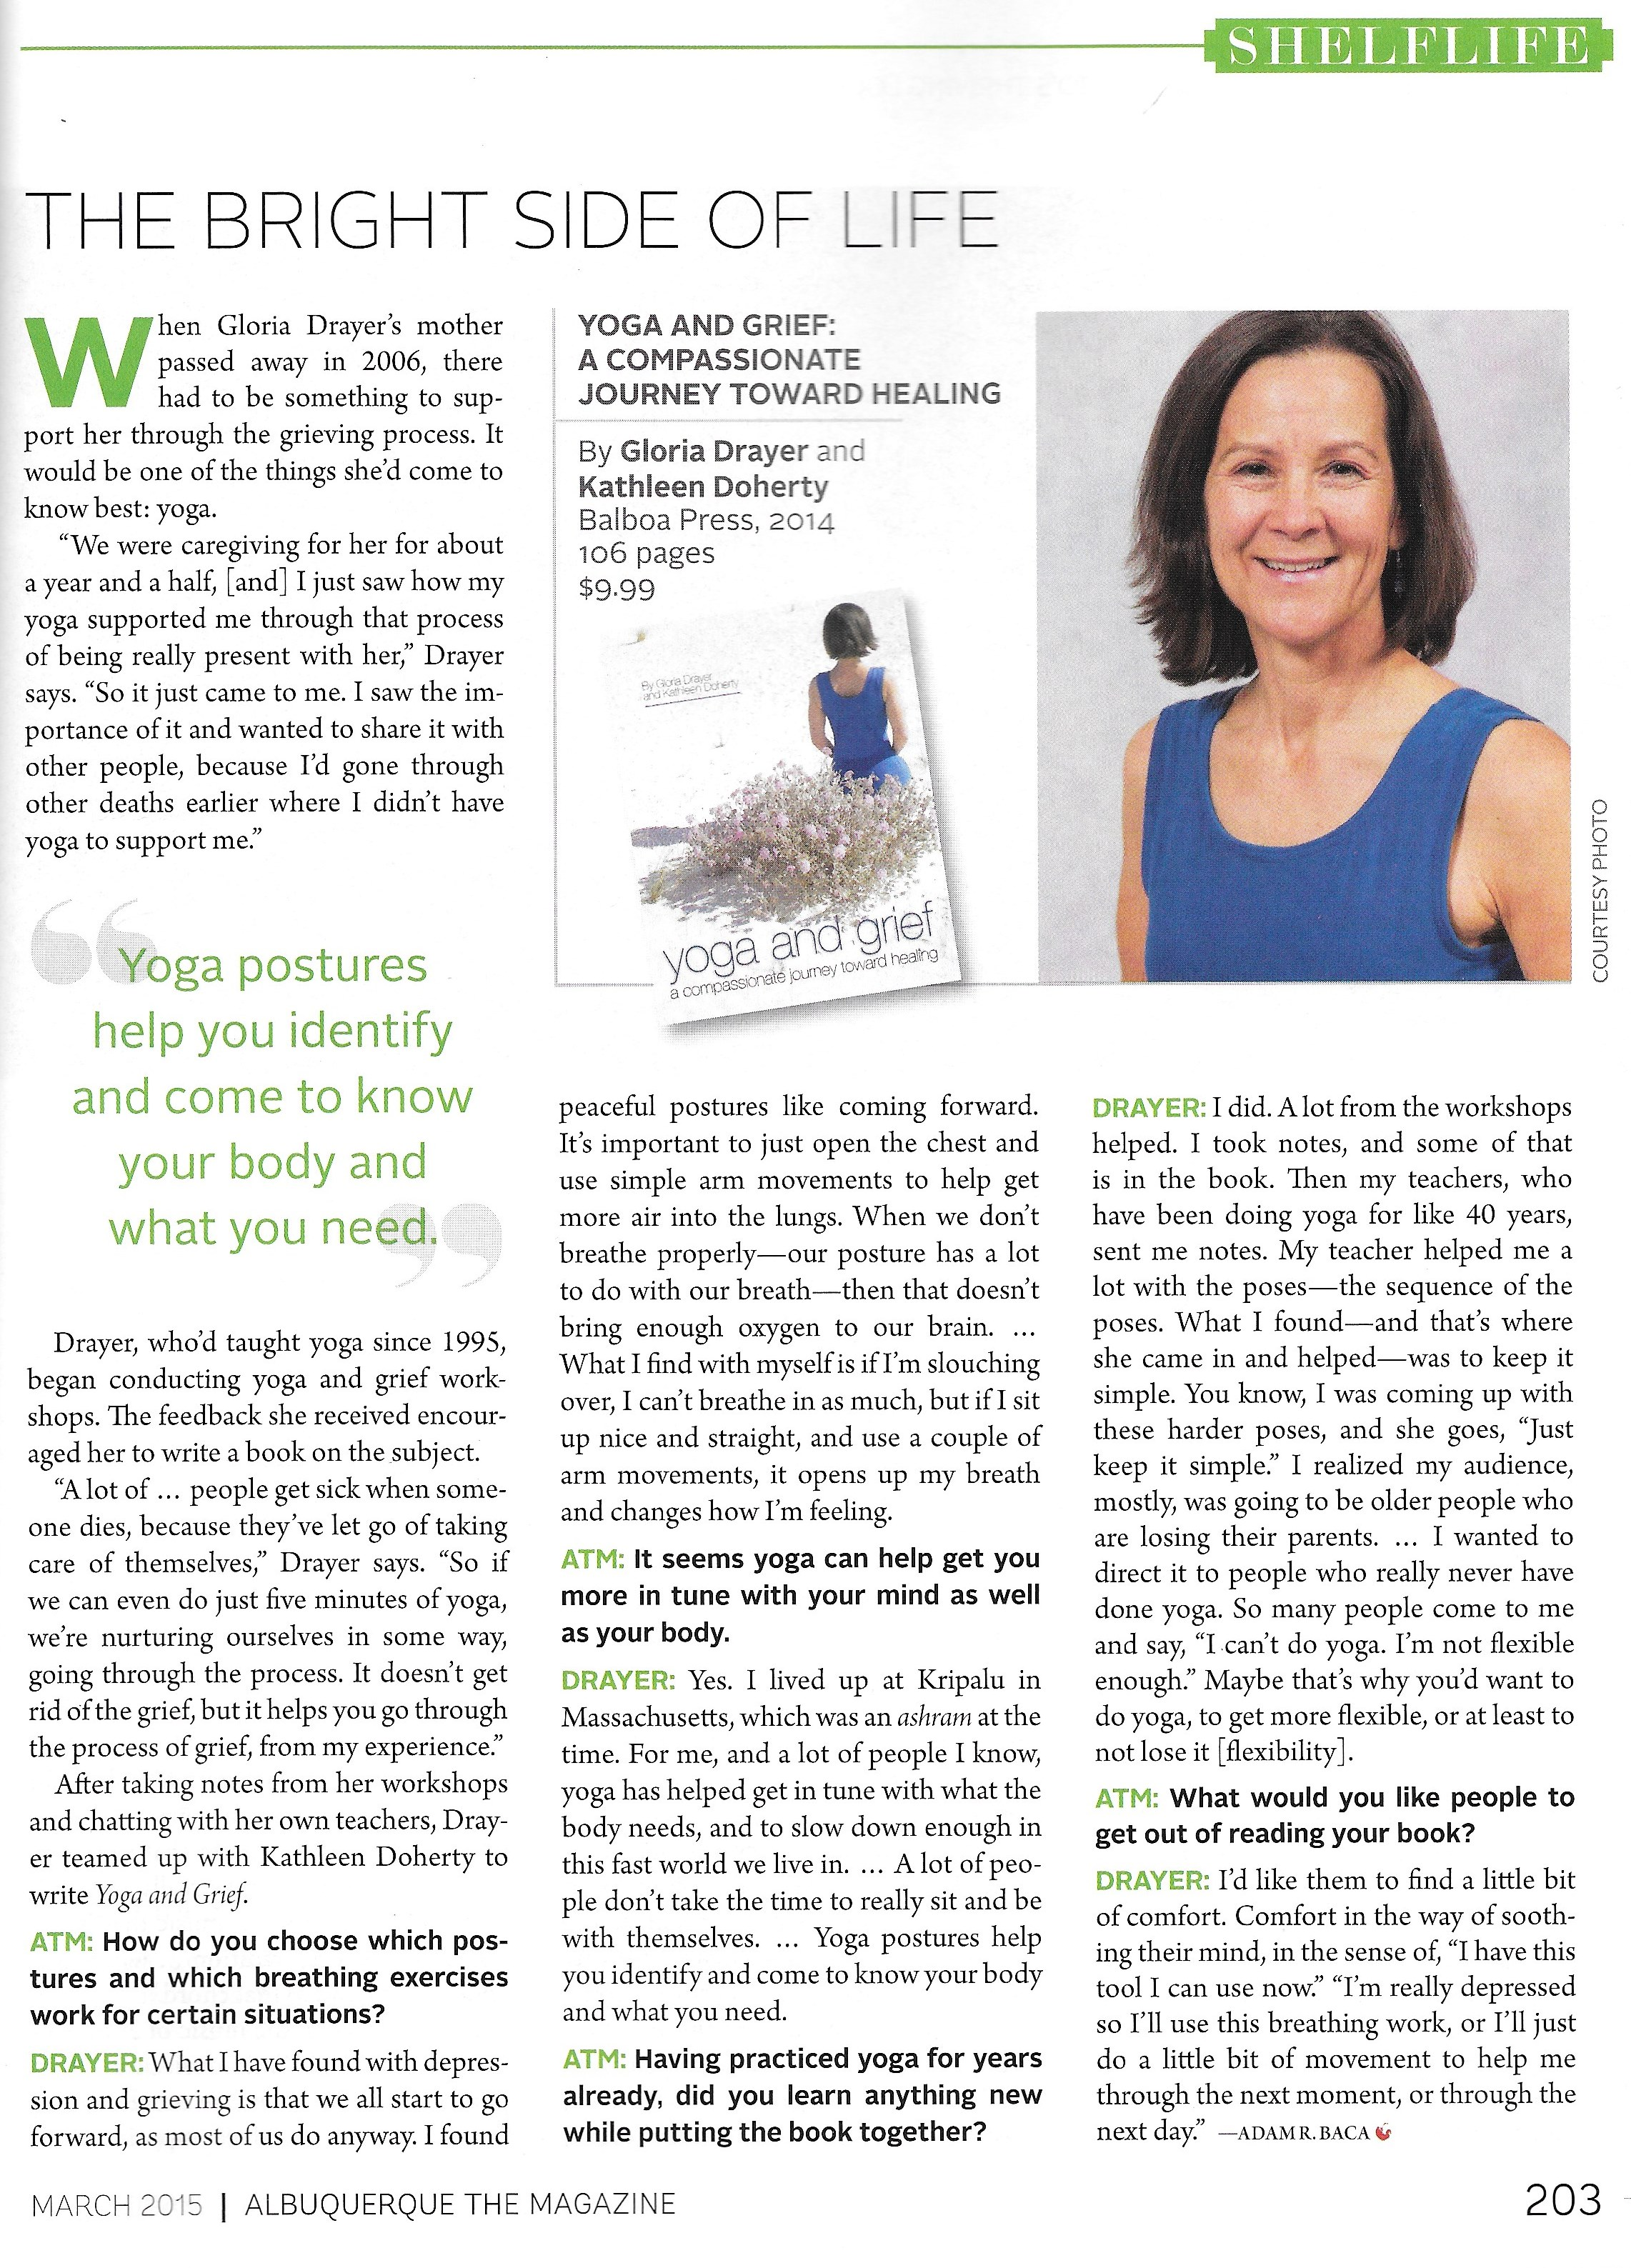 2015-03 ABQ mag article